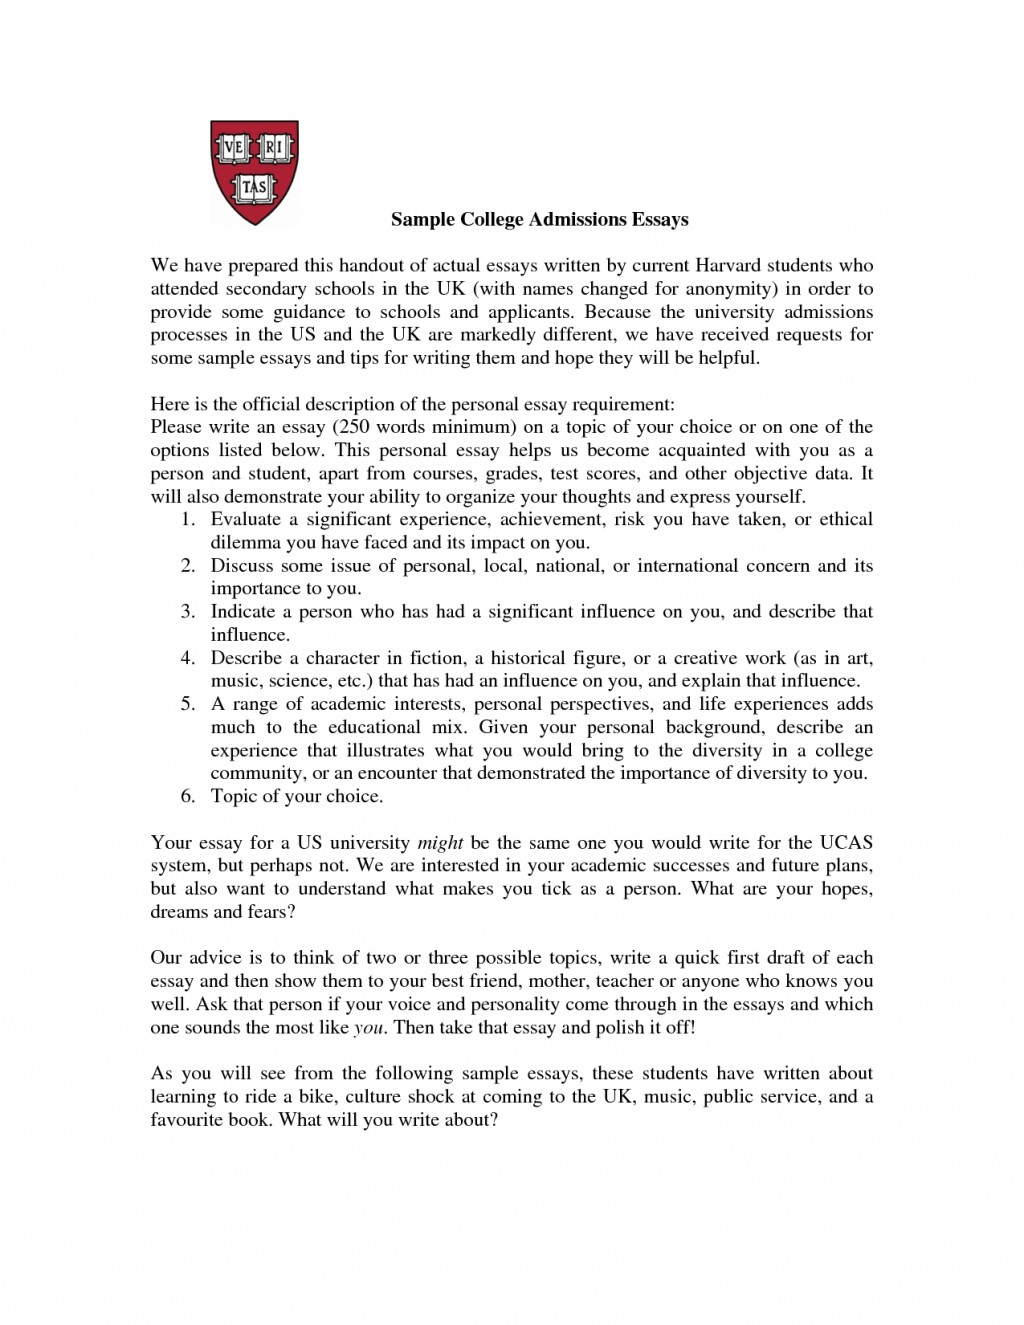 004 Sample College Application Essay Example Surprising Essays That Worked For Ivy League Pdf 1 Large